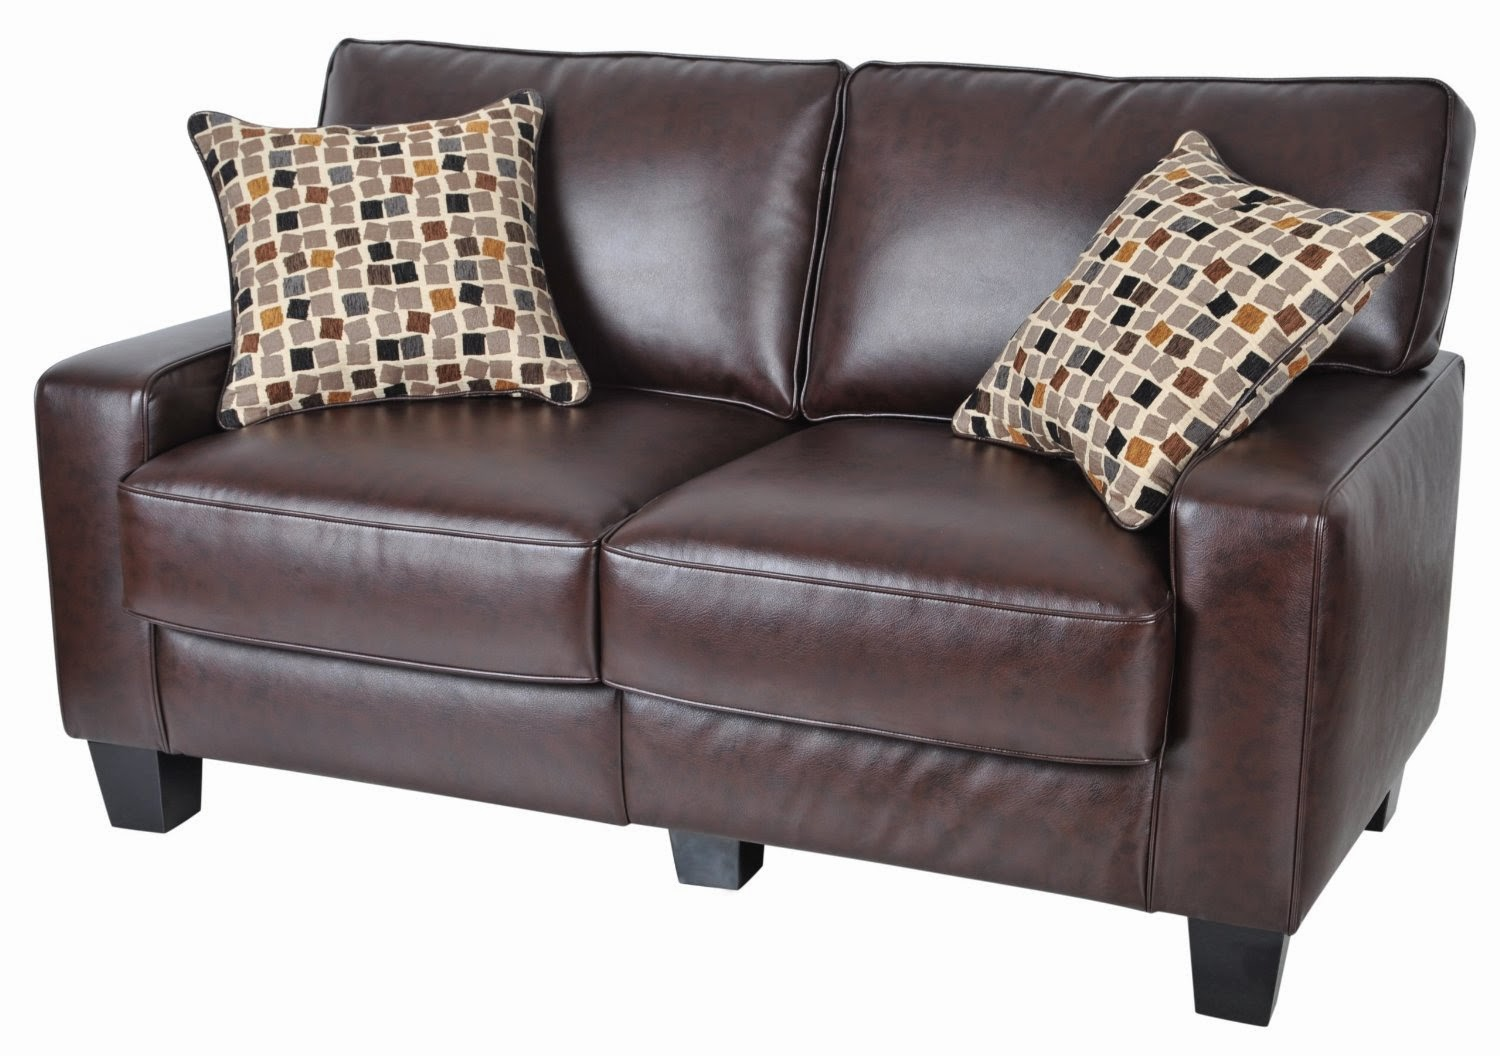 Lovely Living Room Burgundy Leather Sofa